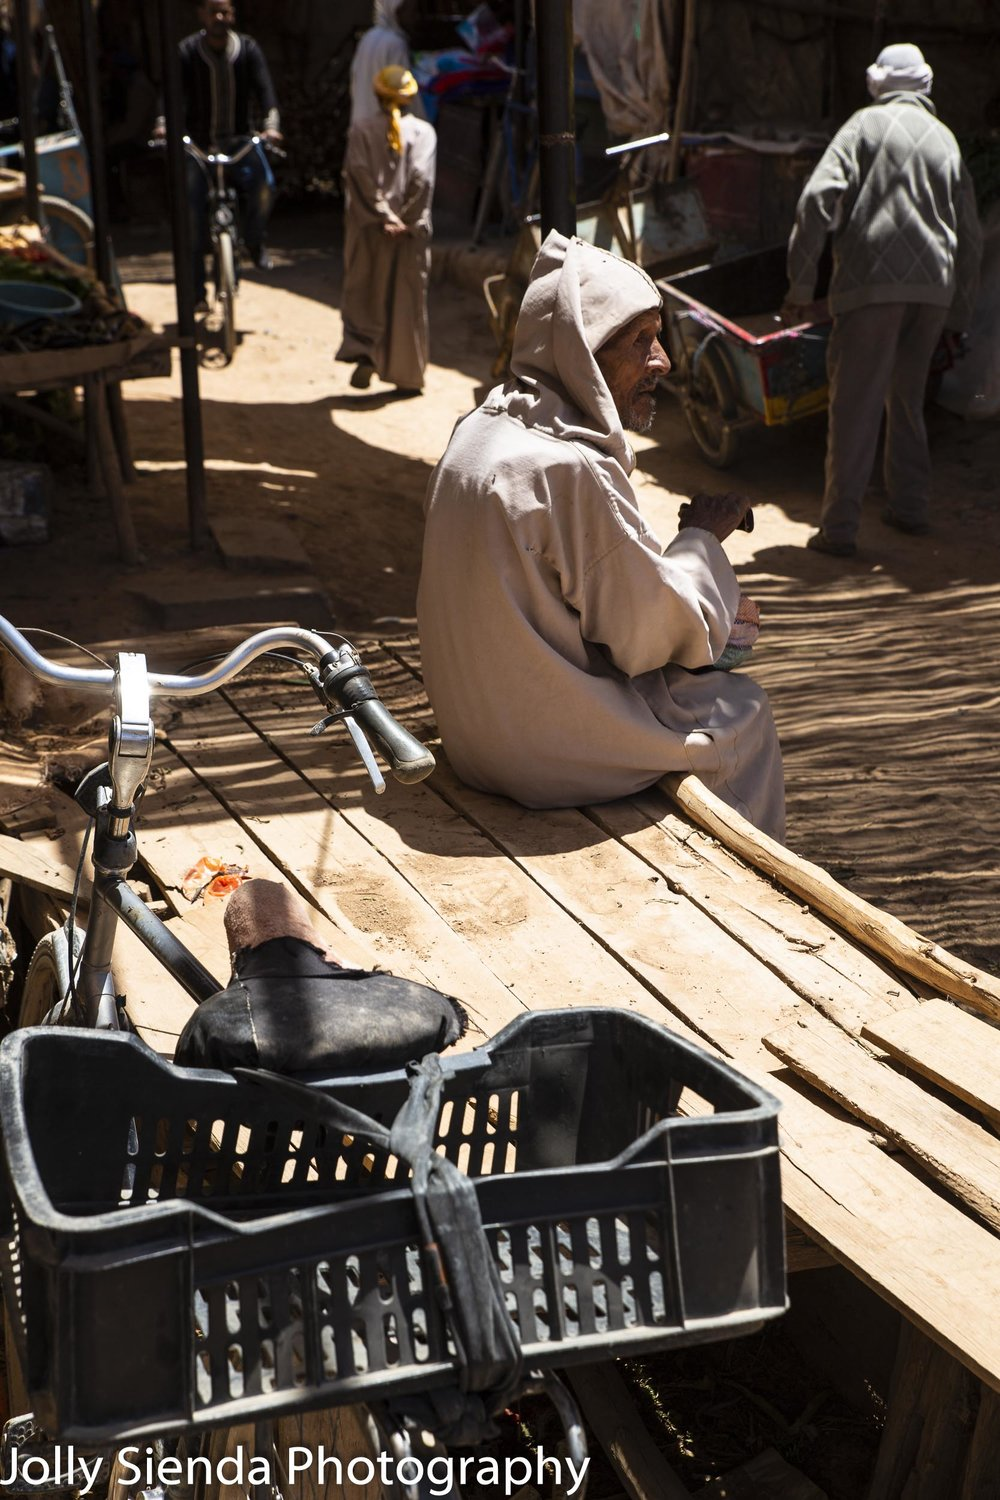 Moroccan people in a souk and bikes